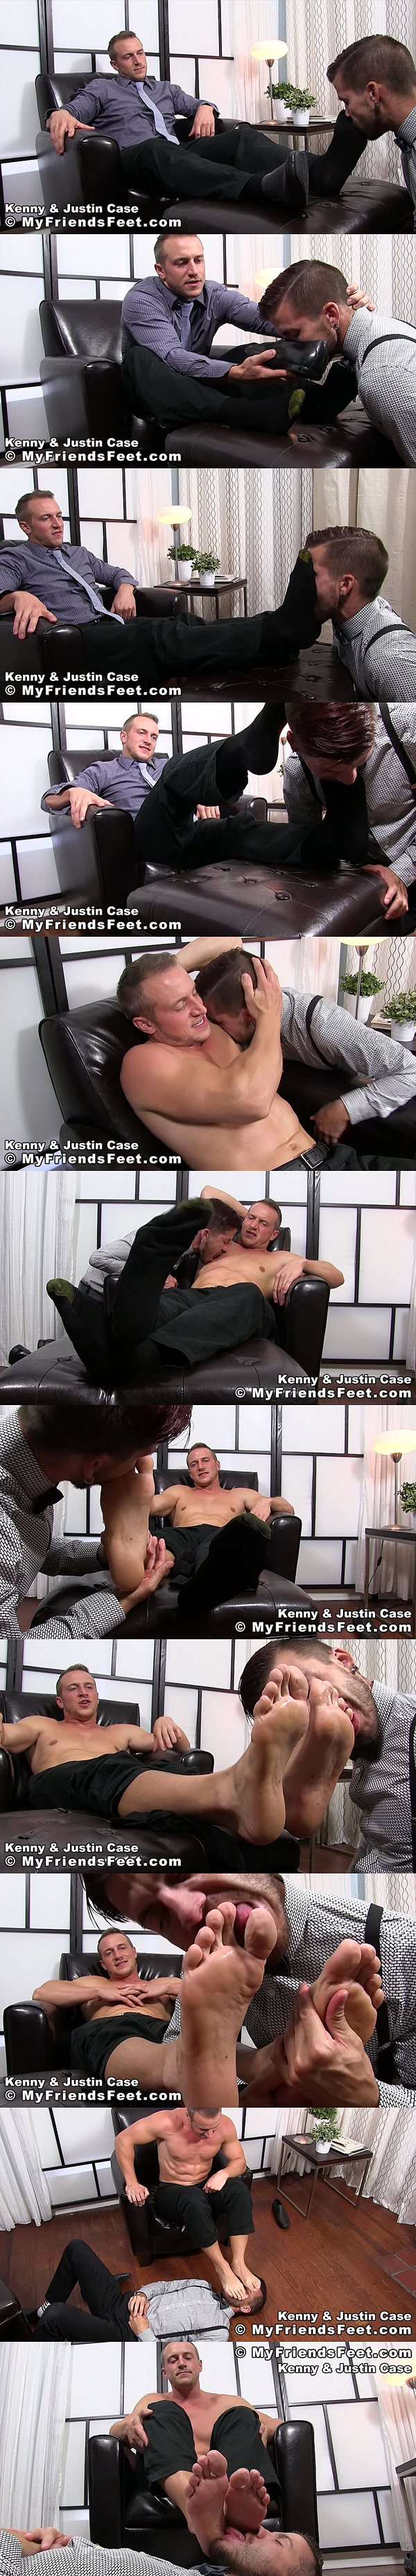 Hot muscle jock Kenny (aka Doc Tay Tay) worshiped by Justin Case at Myfriendsfeet 02